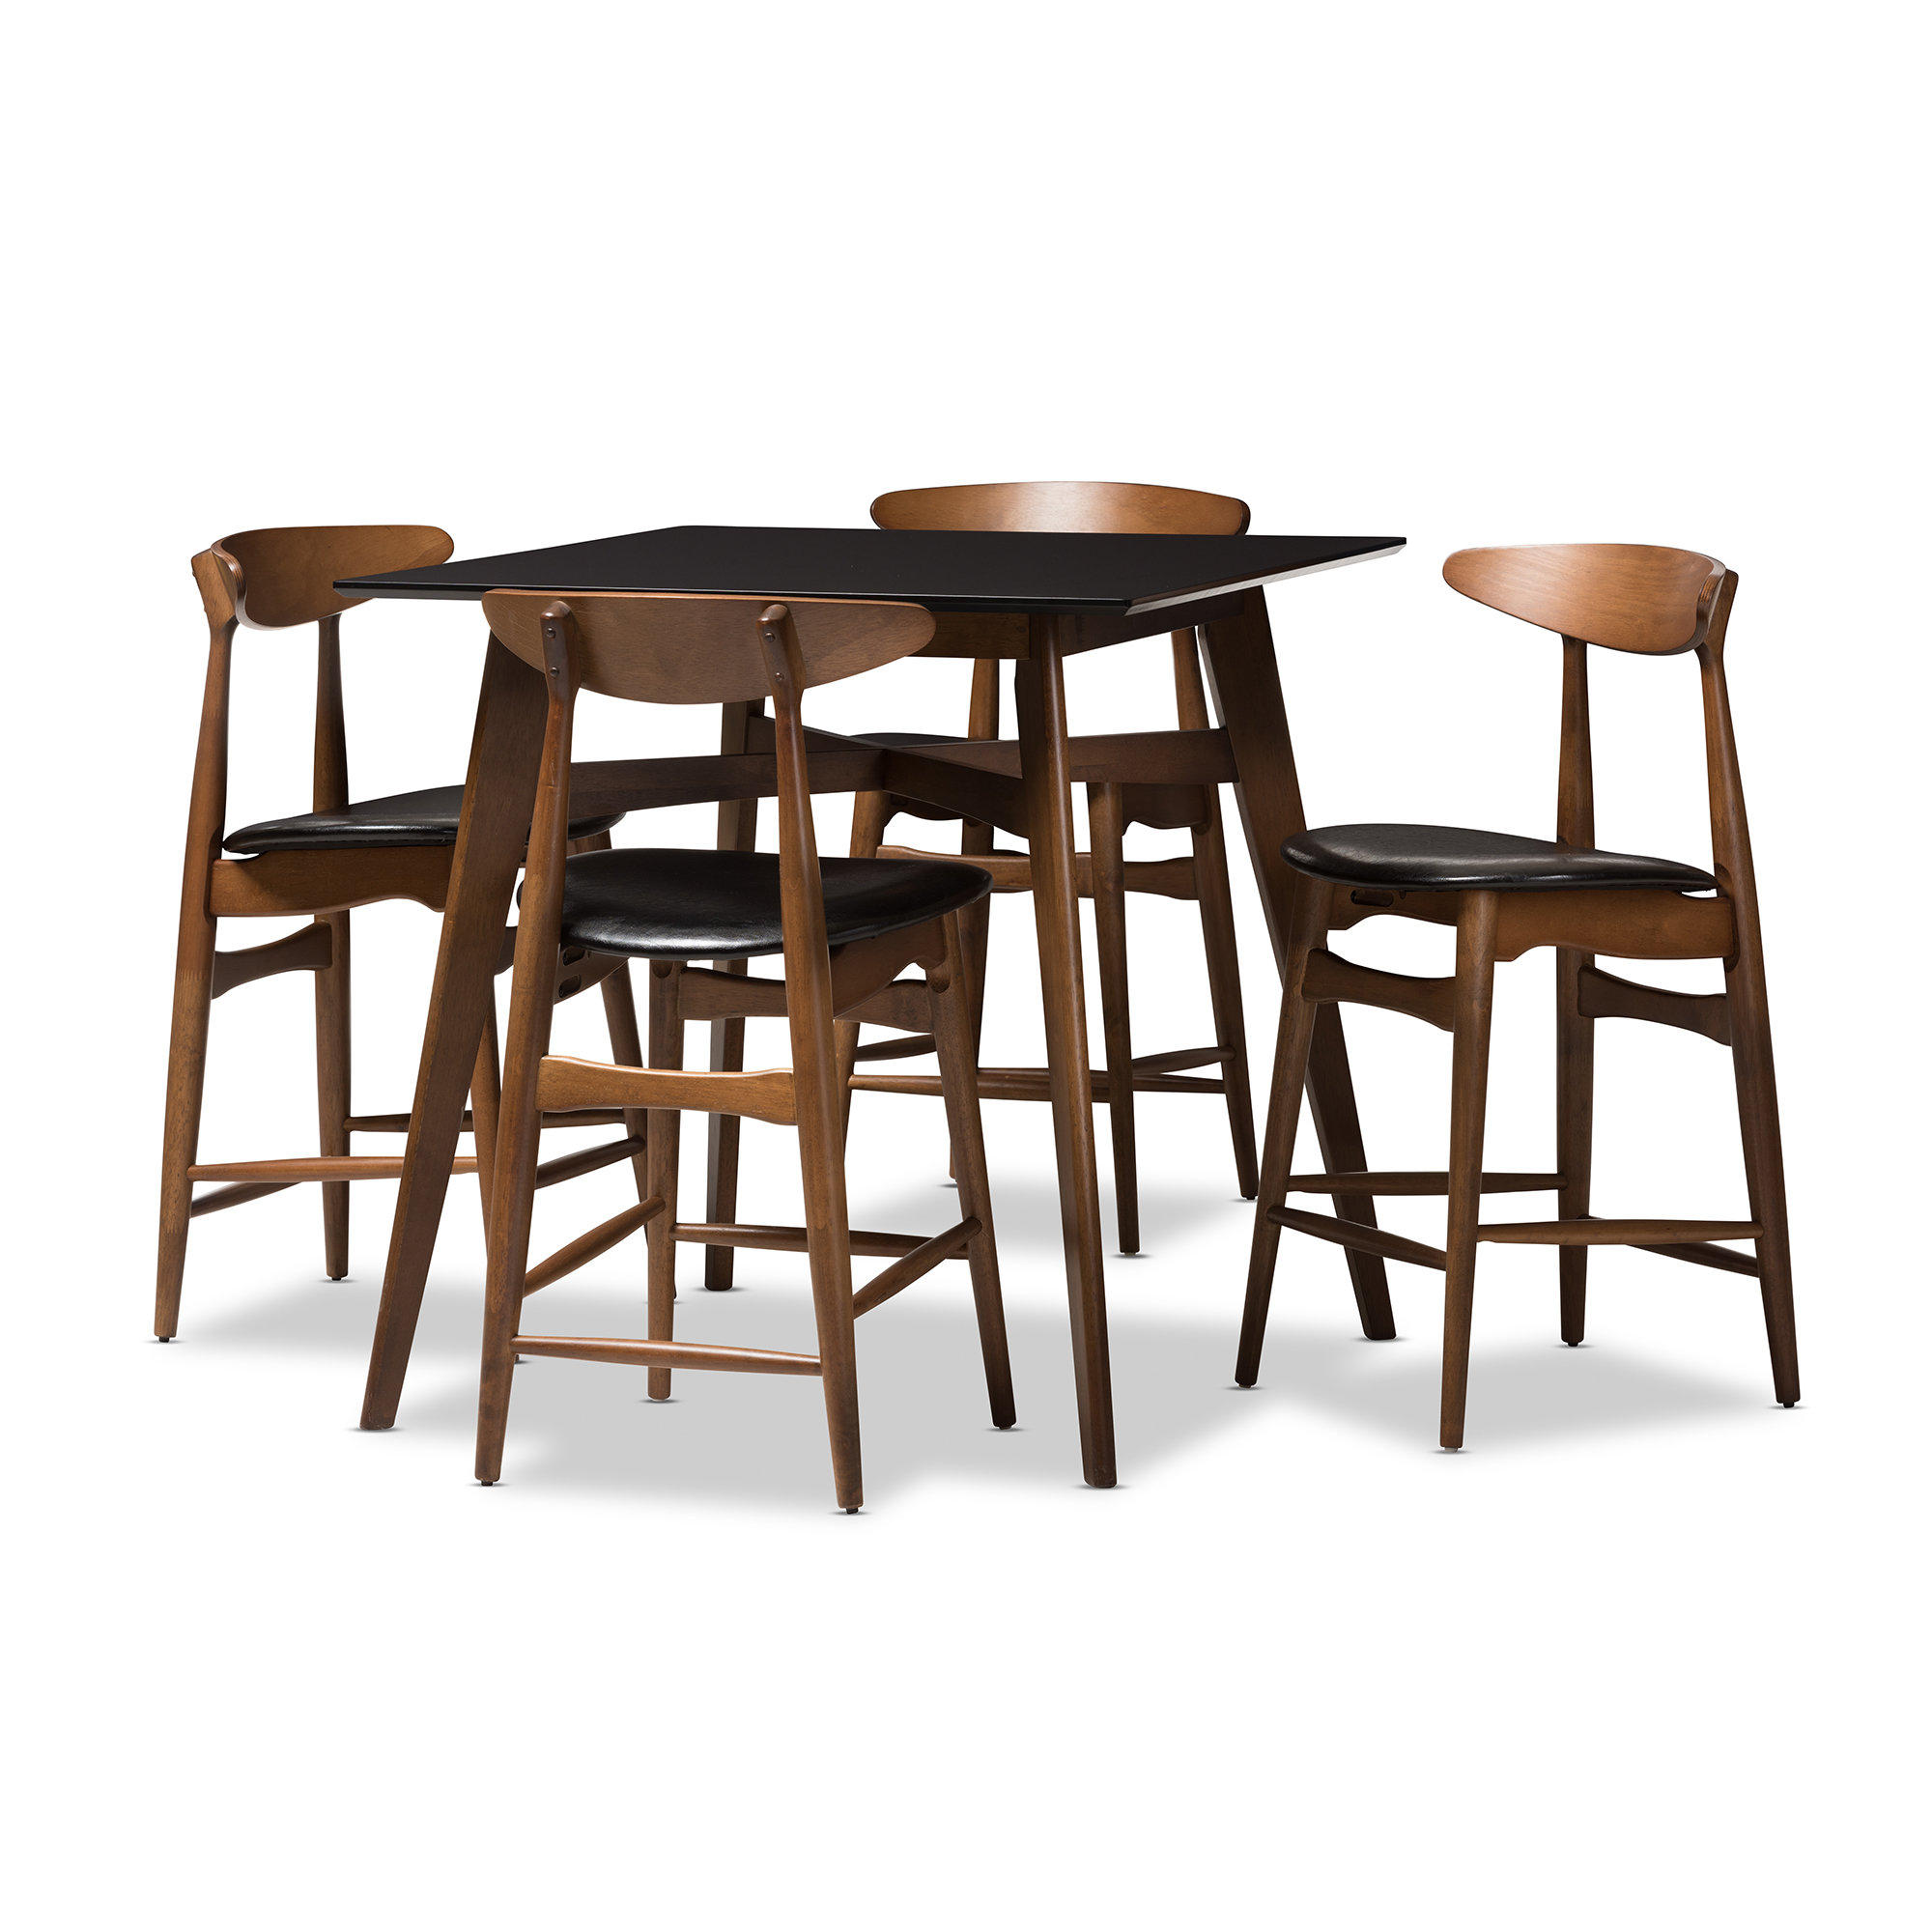 Diez Mid Century 5 Piece Pub Table Set Inside 2018 Hood Canal 3 Piece Dining Sets (Image 5 of 20)